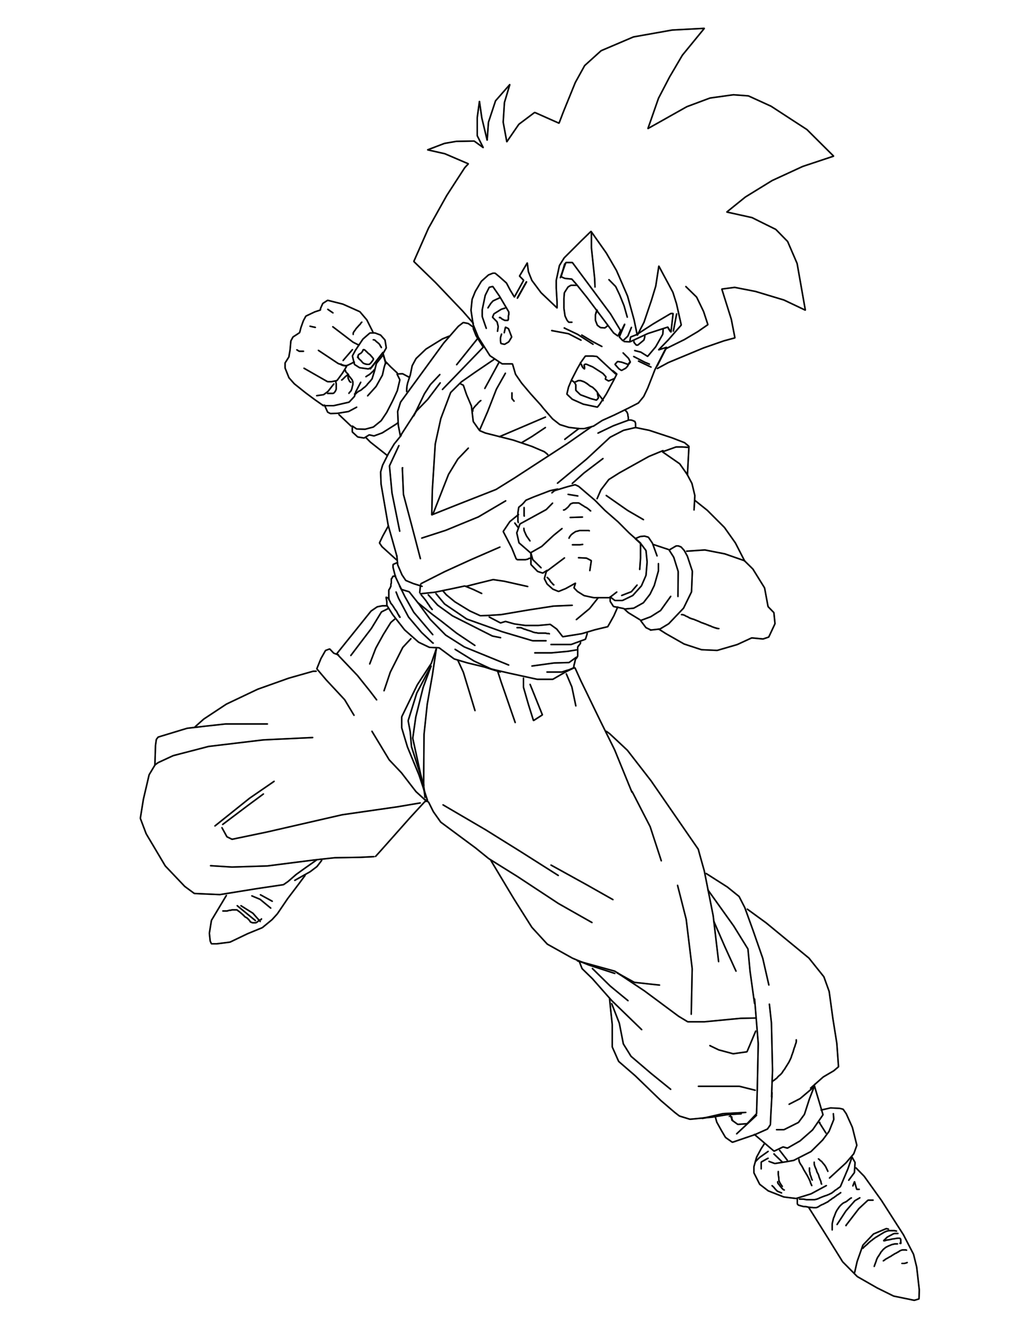 Mobile/mystic Gohan Coloring Pages Coloring Pages